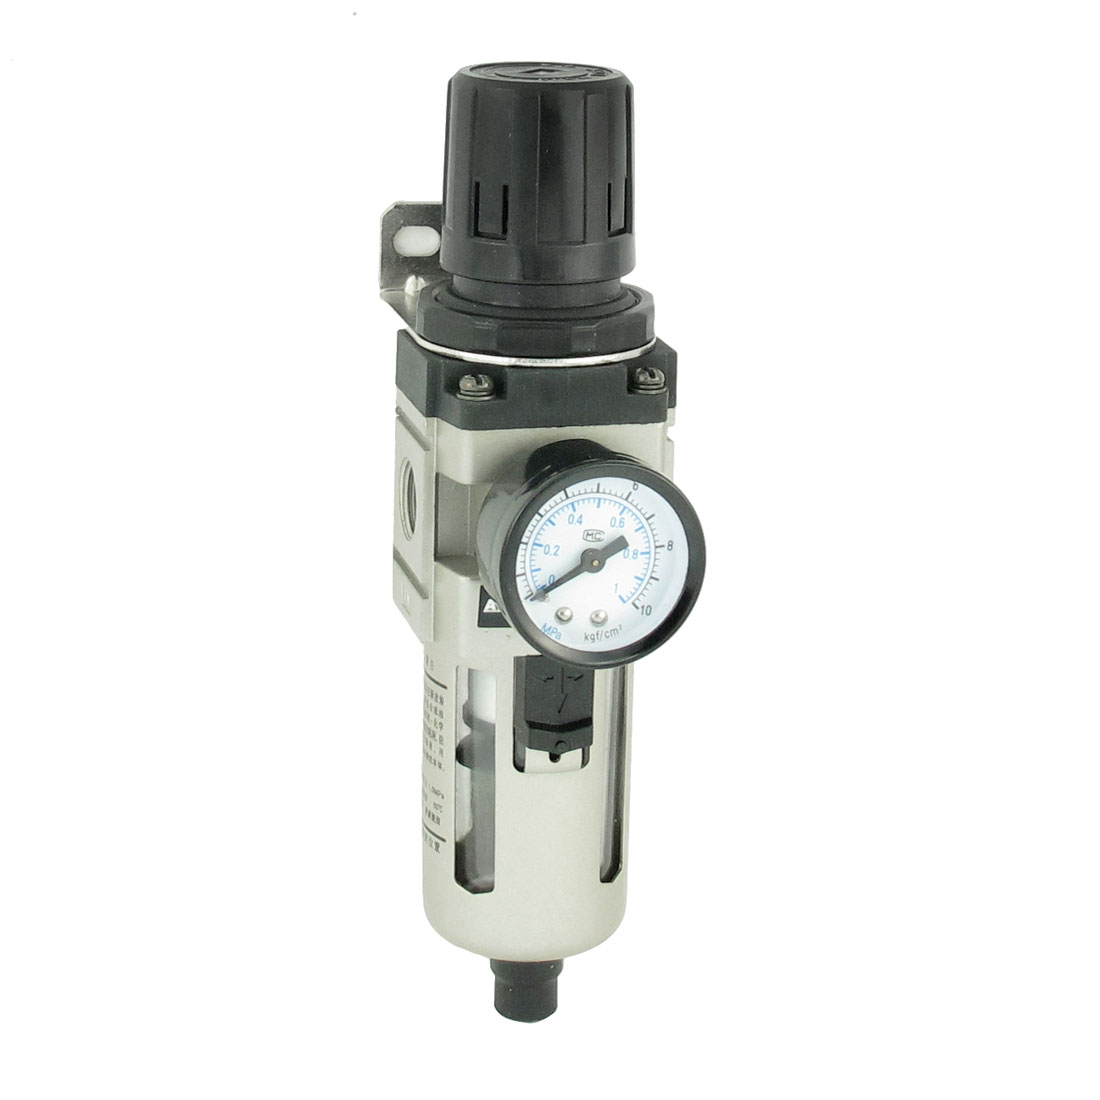 "1.0MPa 1.6"" Dial Gauge Pneumatic Pressure Reducing Regulator + Bracket"